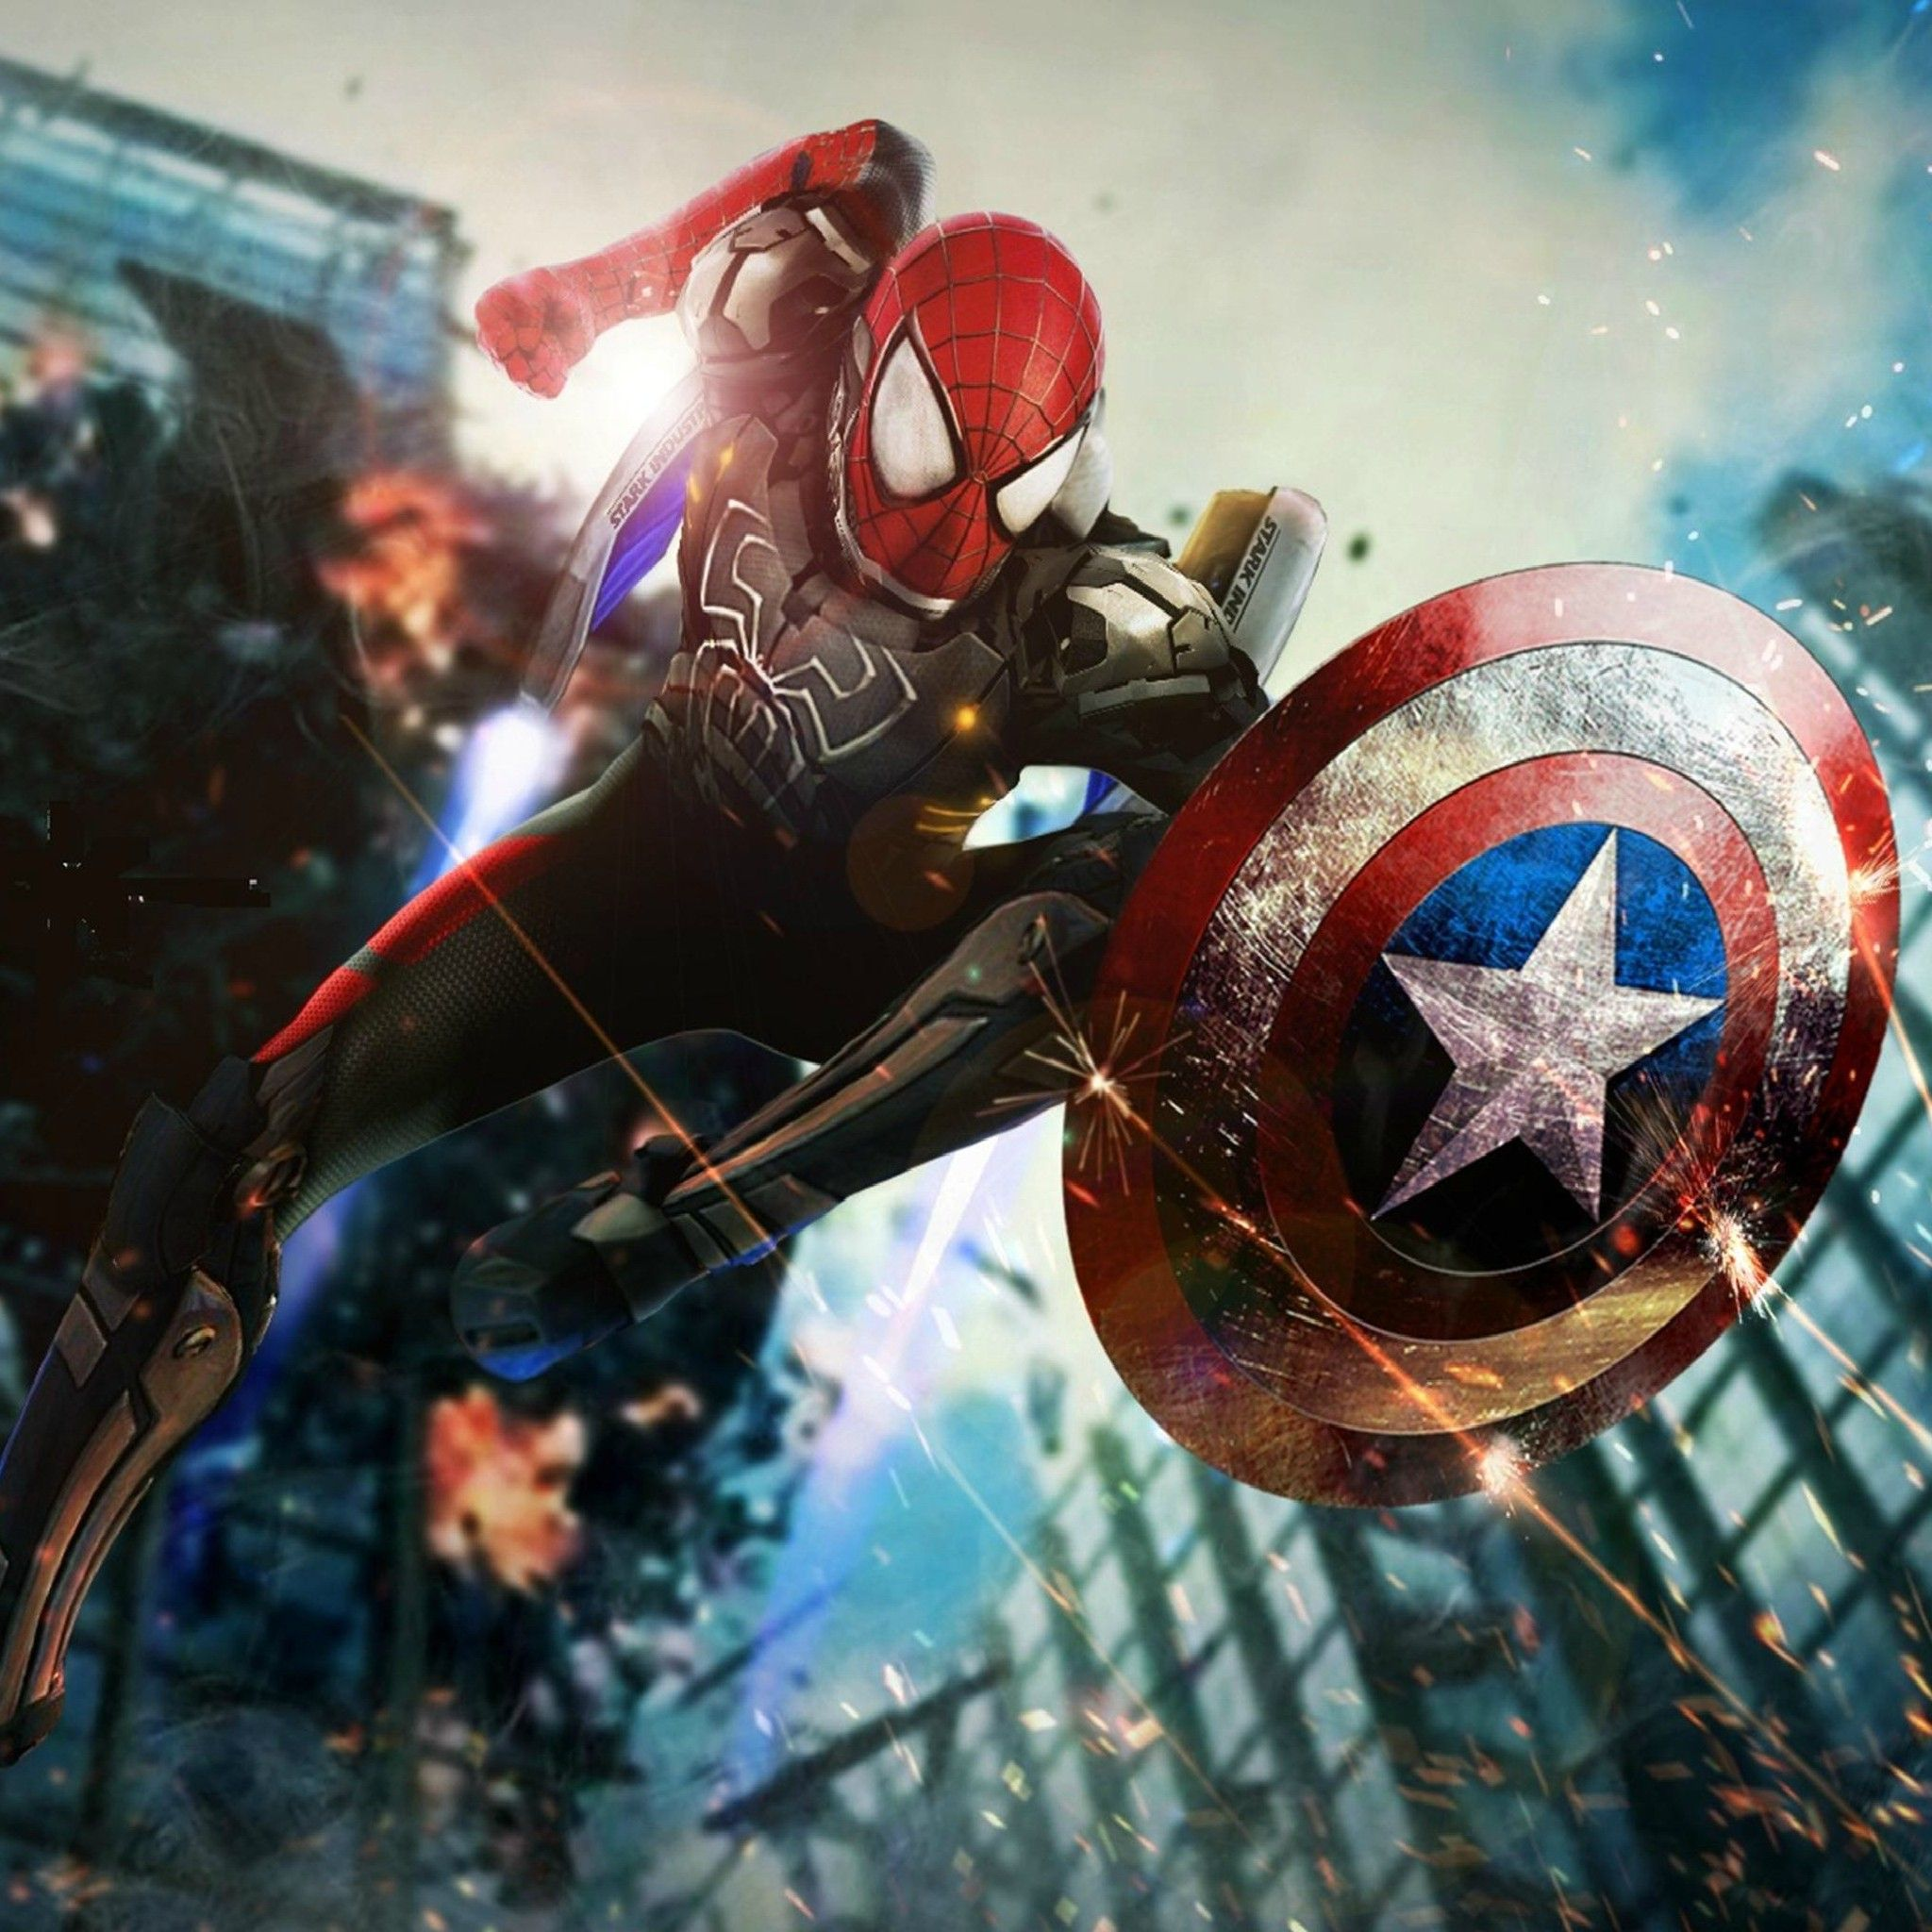 Spiderman Or Captain America Tap To See More Civil War IPhone IPad Android Wallpapers Backgrounds Fondos Mobile9